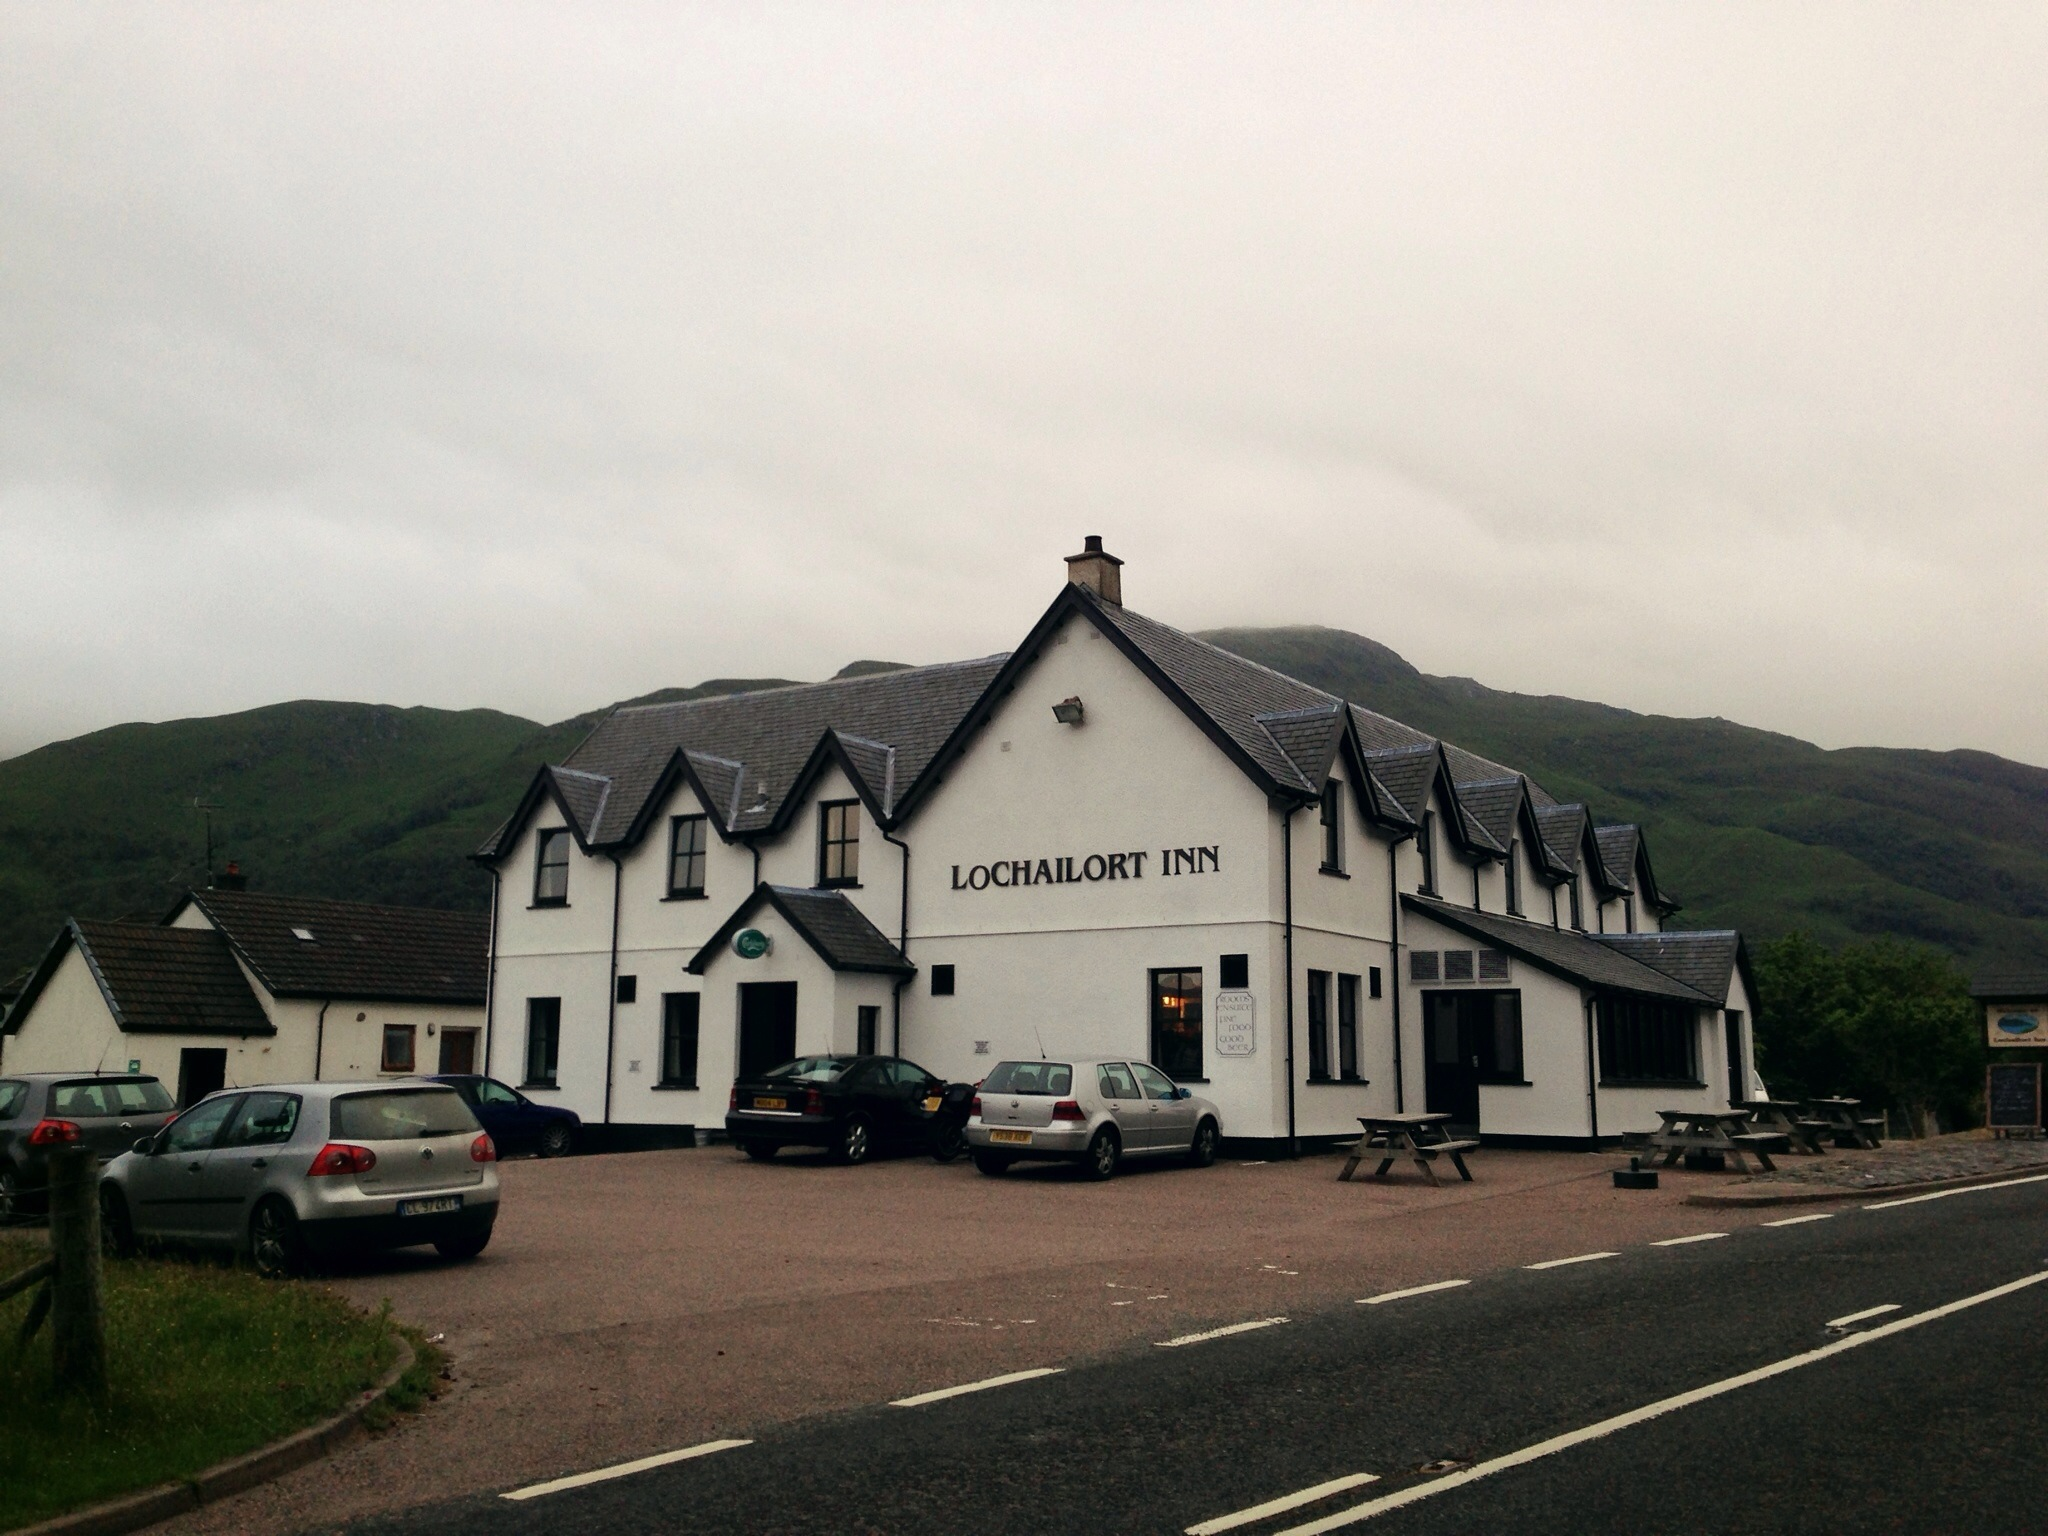 Lochailort Inn has excellent haggis and venison burgers!